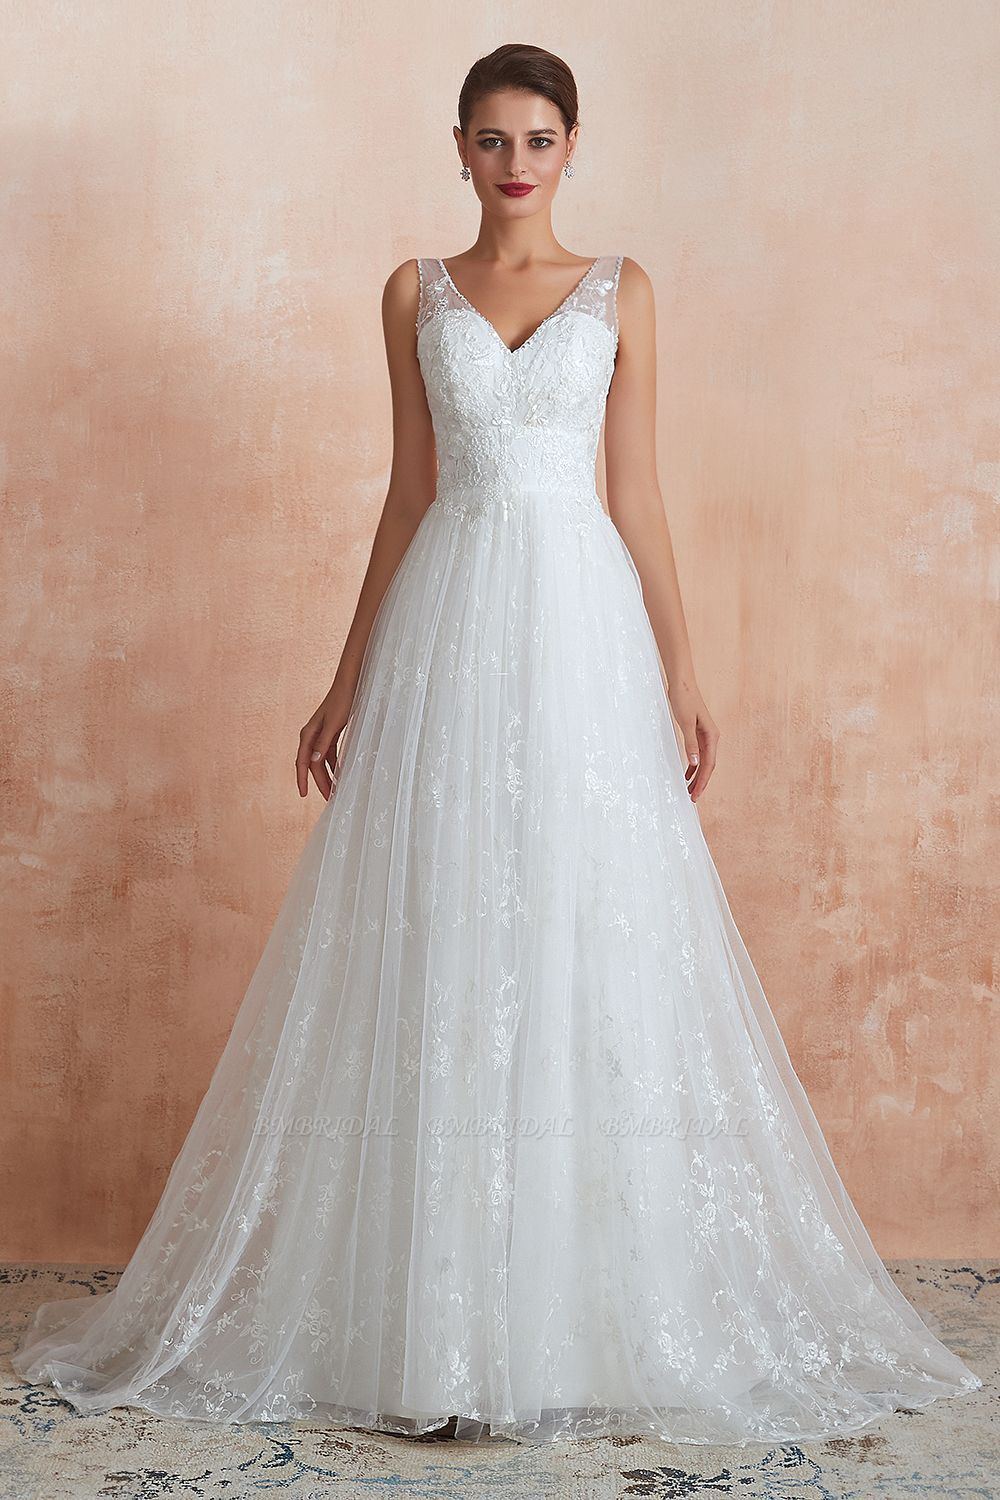 BMbridal Affordable V-Neck Tulle Lace Long White Wedding Dresses Online